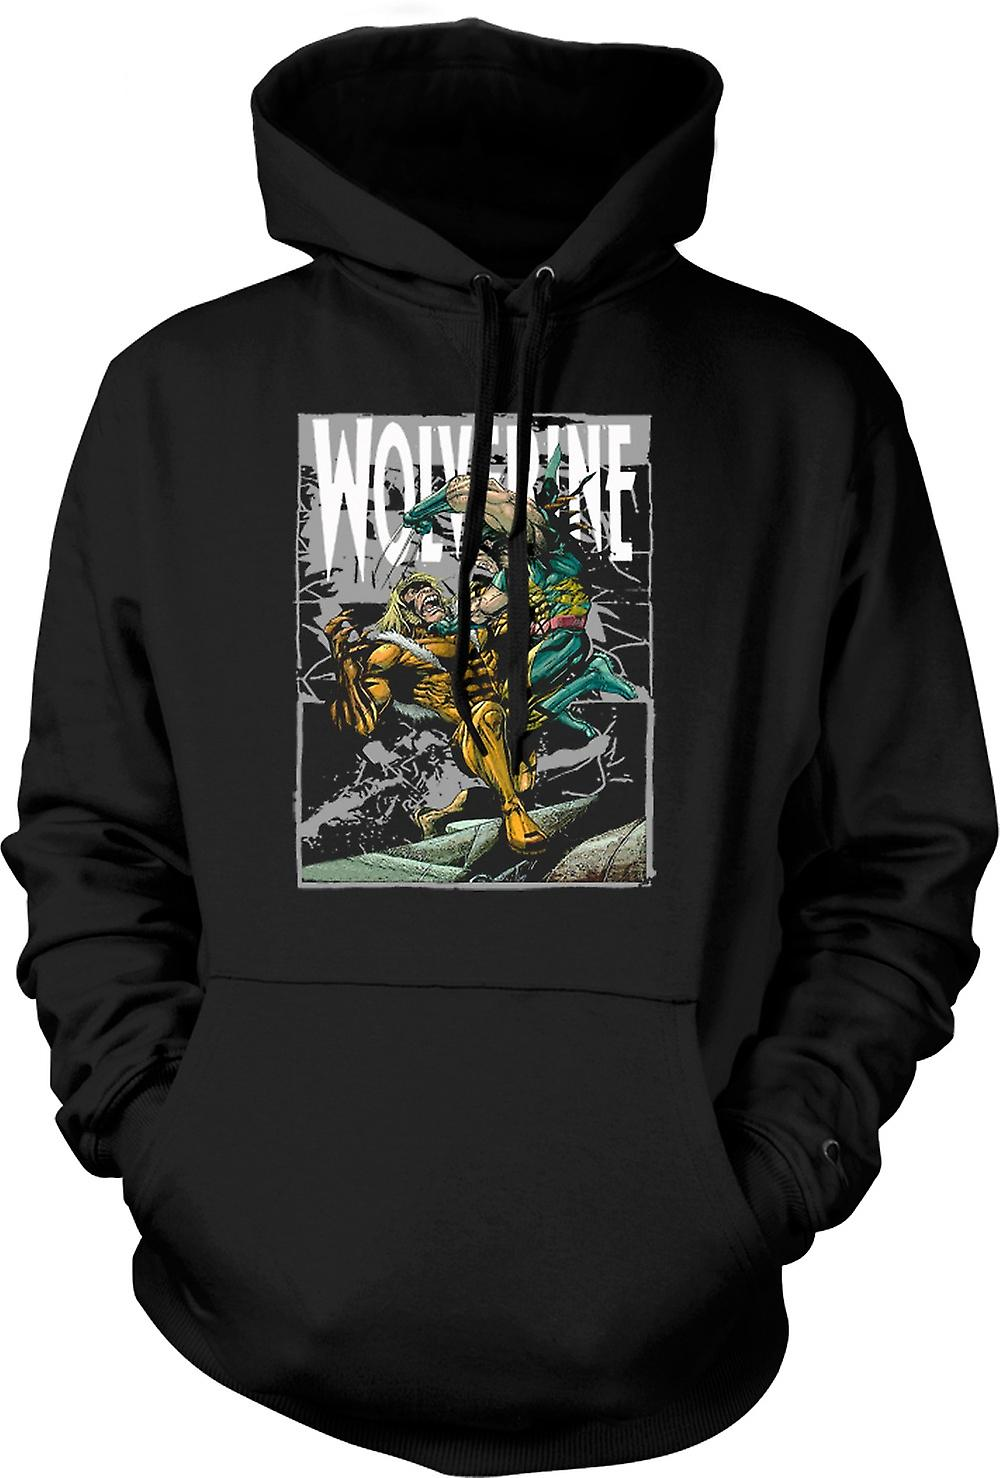 Mens Hoodie - Wolverine vs Victor - Cartoon